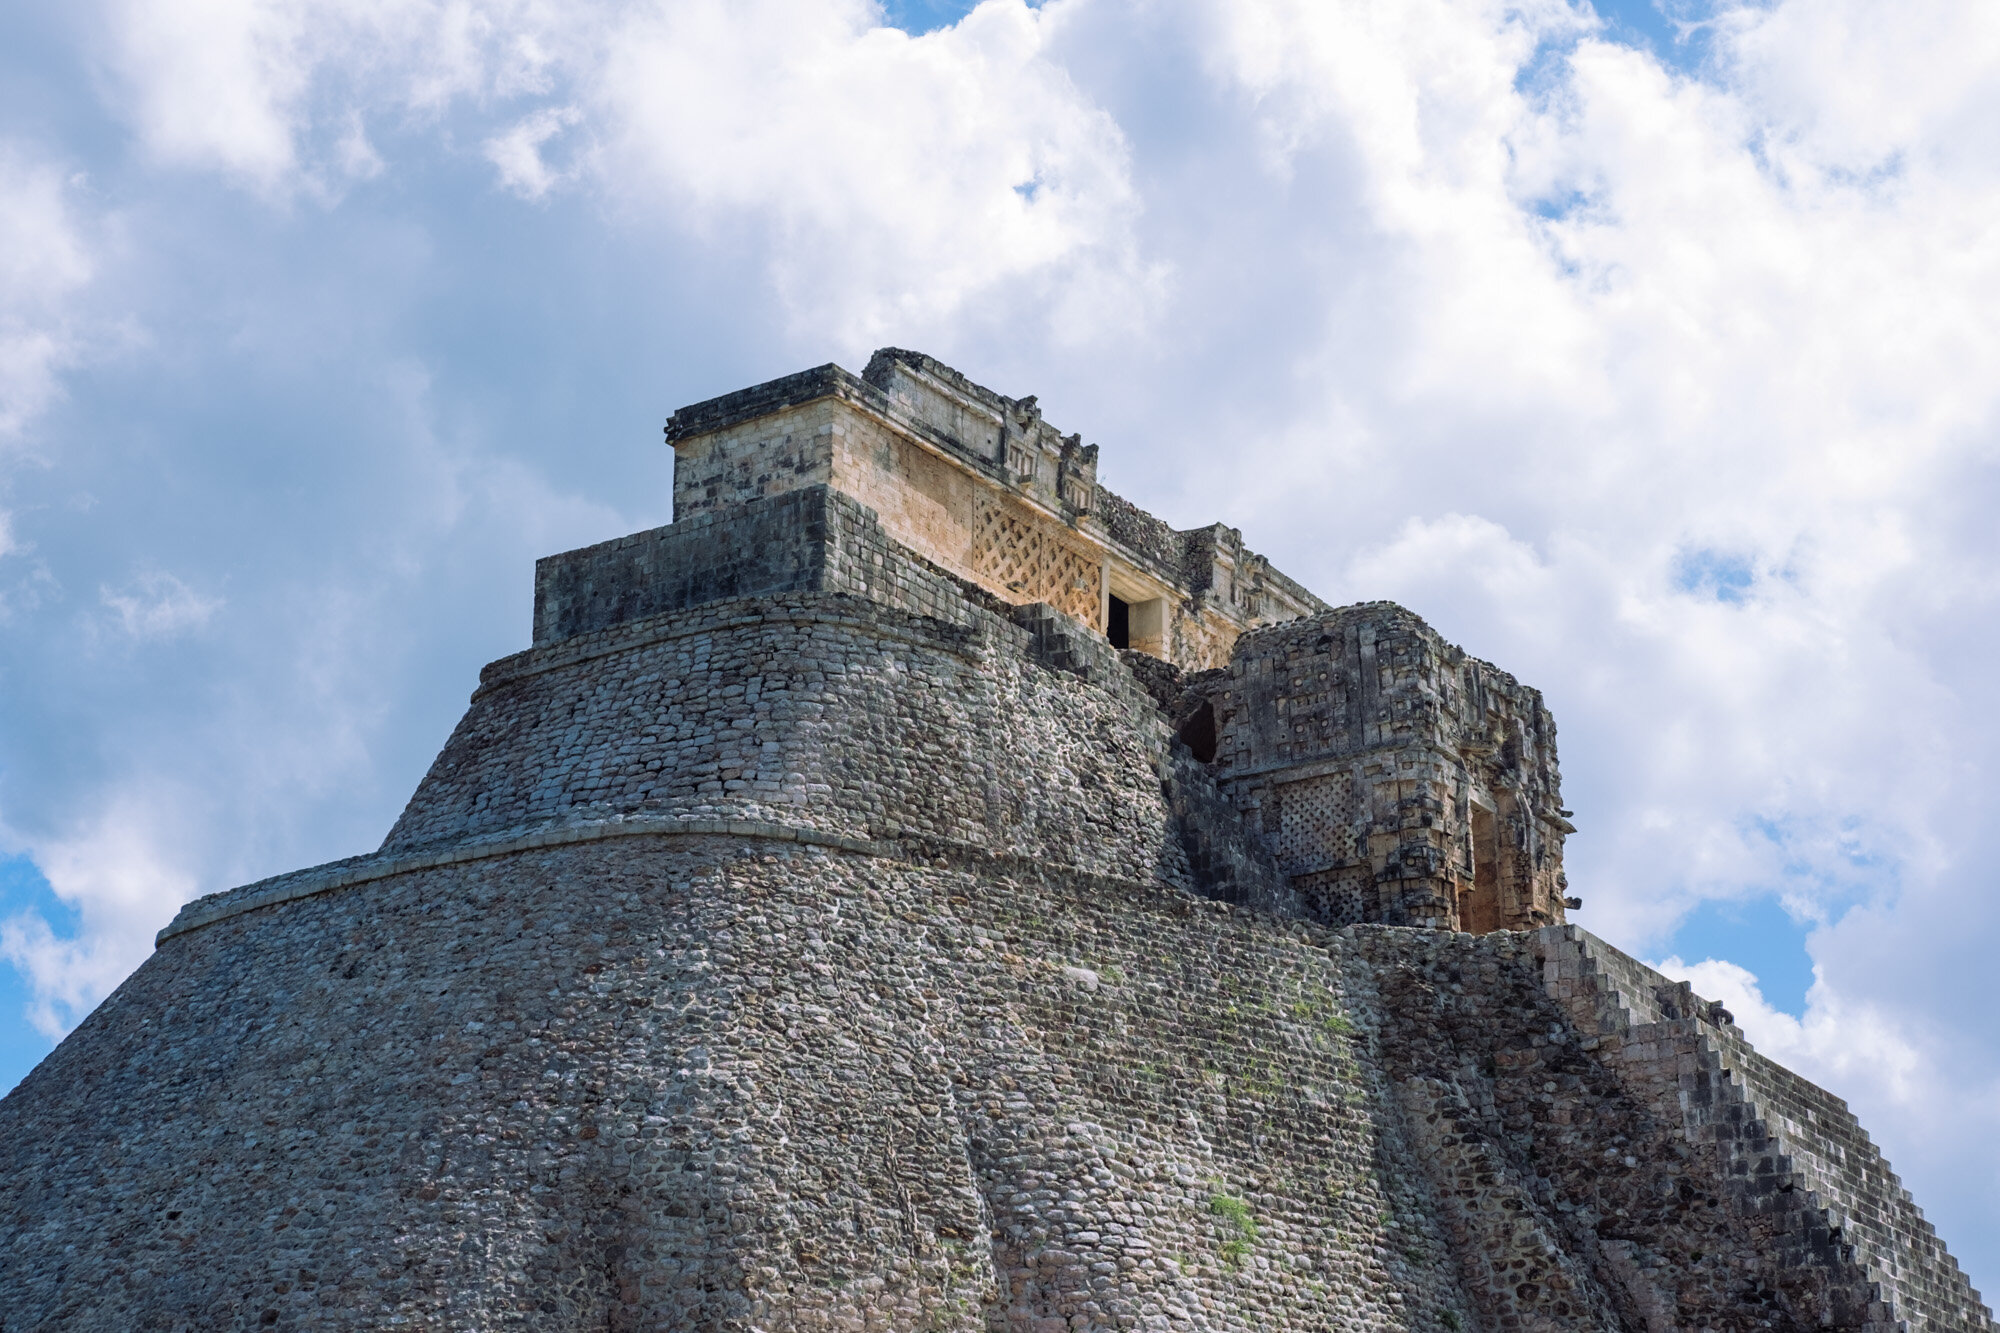 Rachel Off Duty: The Pyramid of the Magician in Uxmal, Mexico